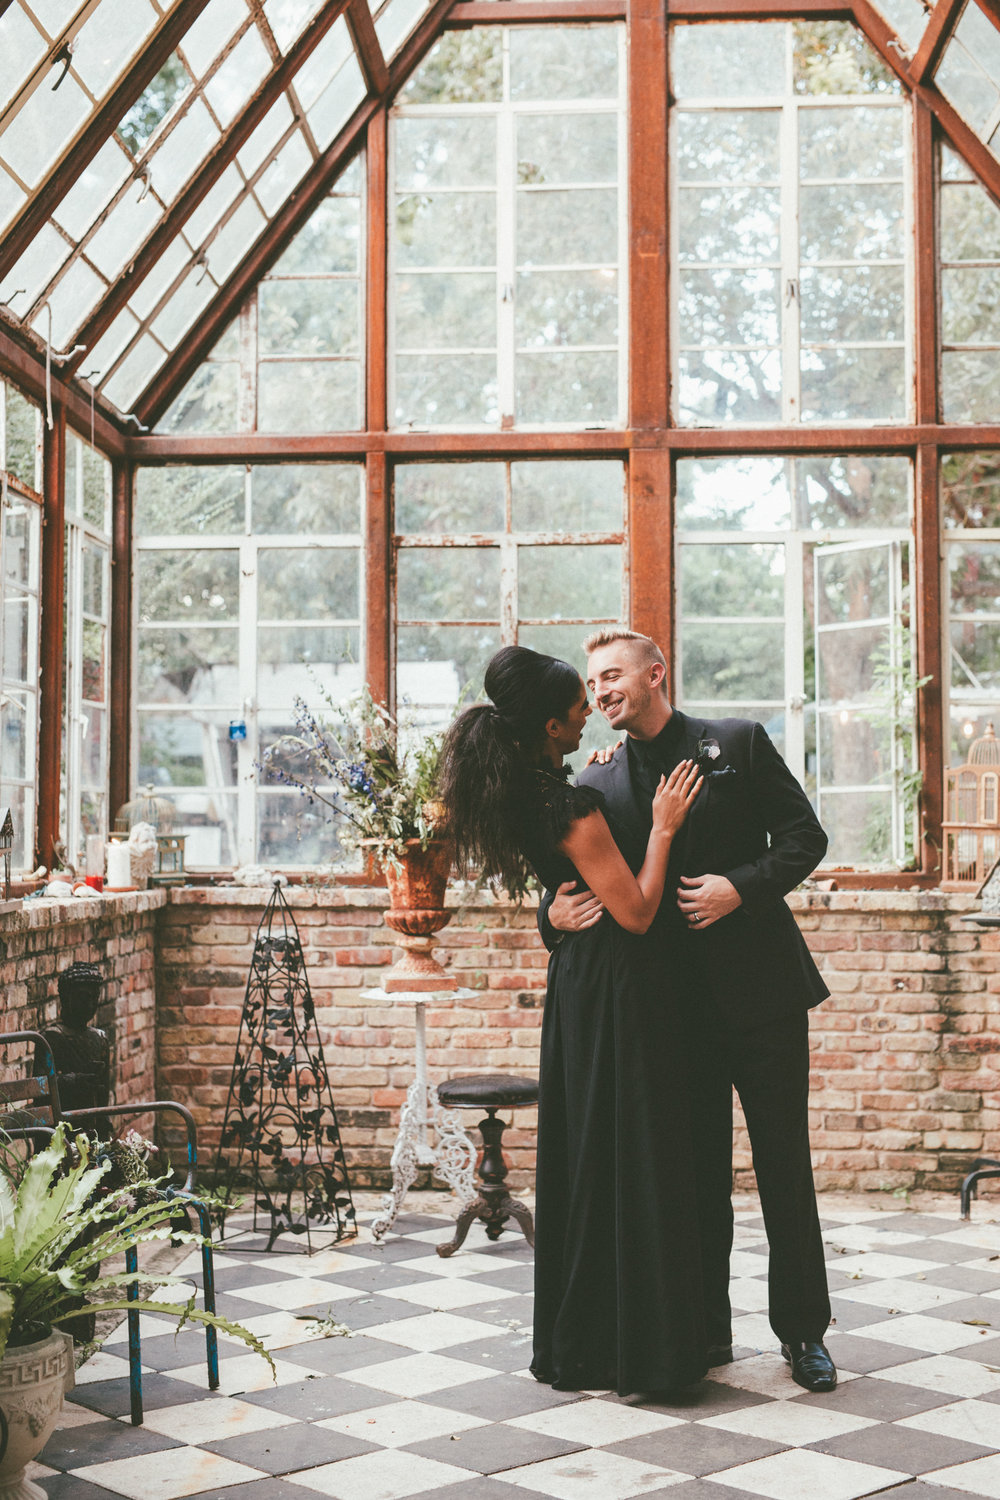 Moody + Witchy Styled Halloween Elopement Photography at Sekrit Theatre - Austin Wedding and Elopement Photographer